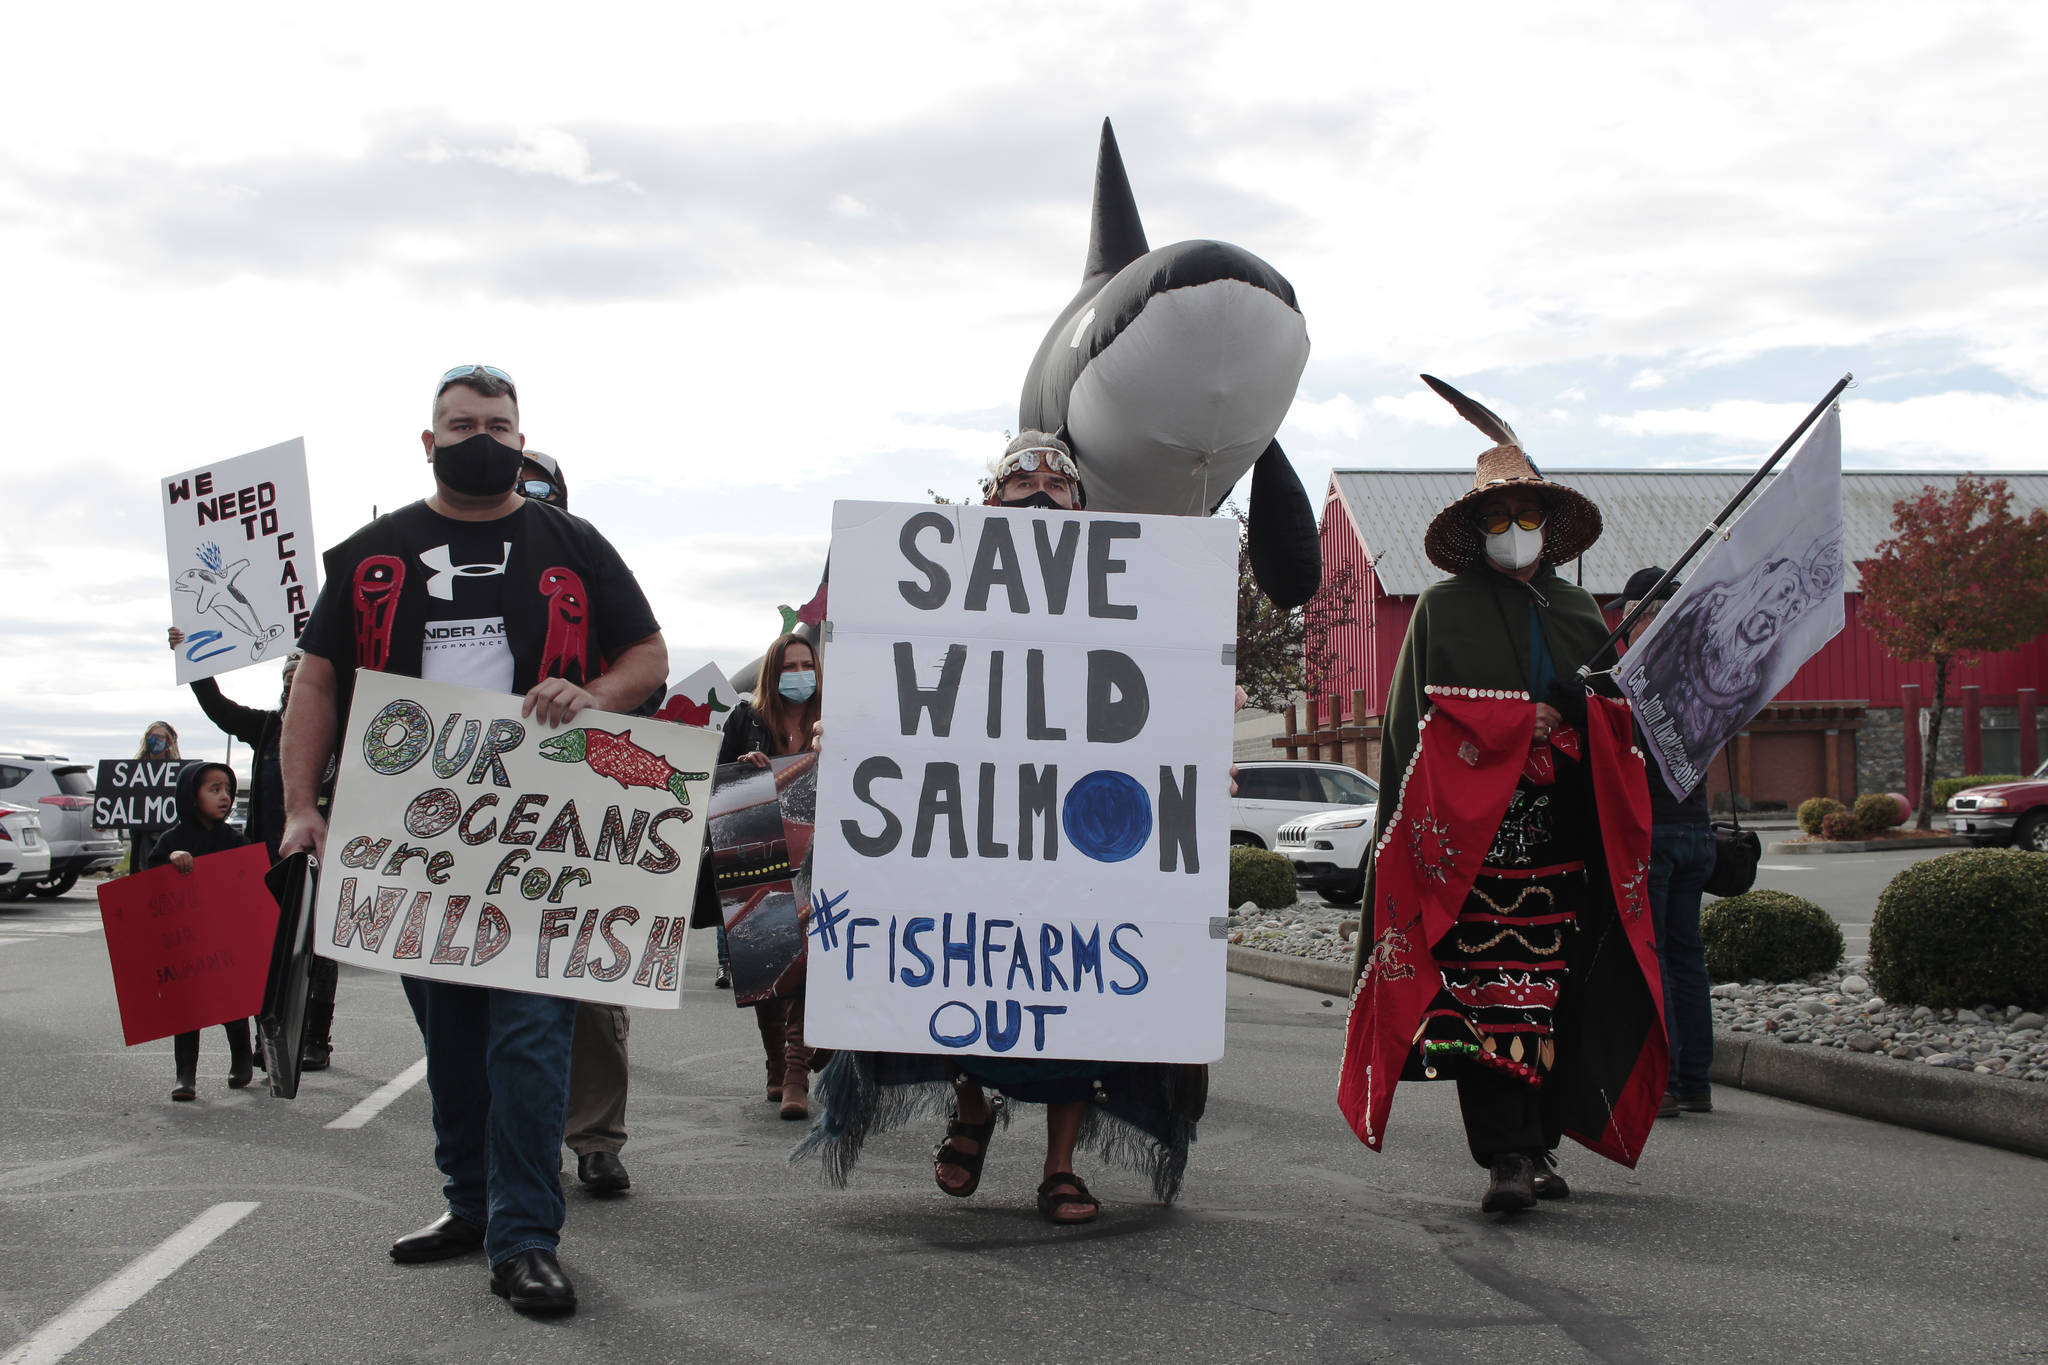 A Photo from Sept. 2020, when First Nations and wild salmon advocates took to the streets in Campbell River to protest against open-pen fish farms in B.C.'s waters. On Dec. 17, federal fisheries minister Bernadette Jordan announced her decision to phase out 19 fish farms from Discovery Islands. Cermaq's application to extend leases and transfer smolts was denied. (Marc Kitteringham/Campbell River Mirror)